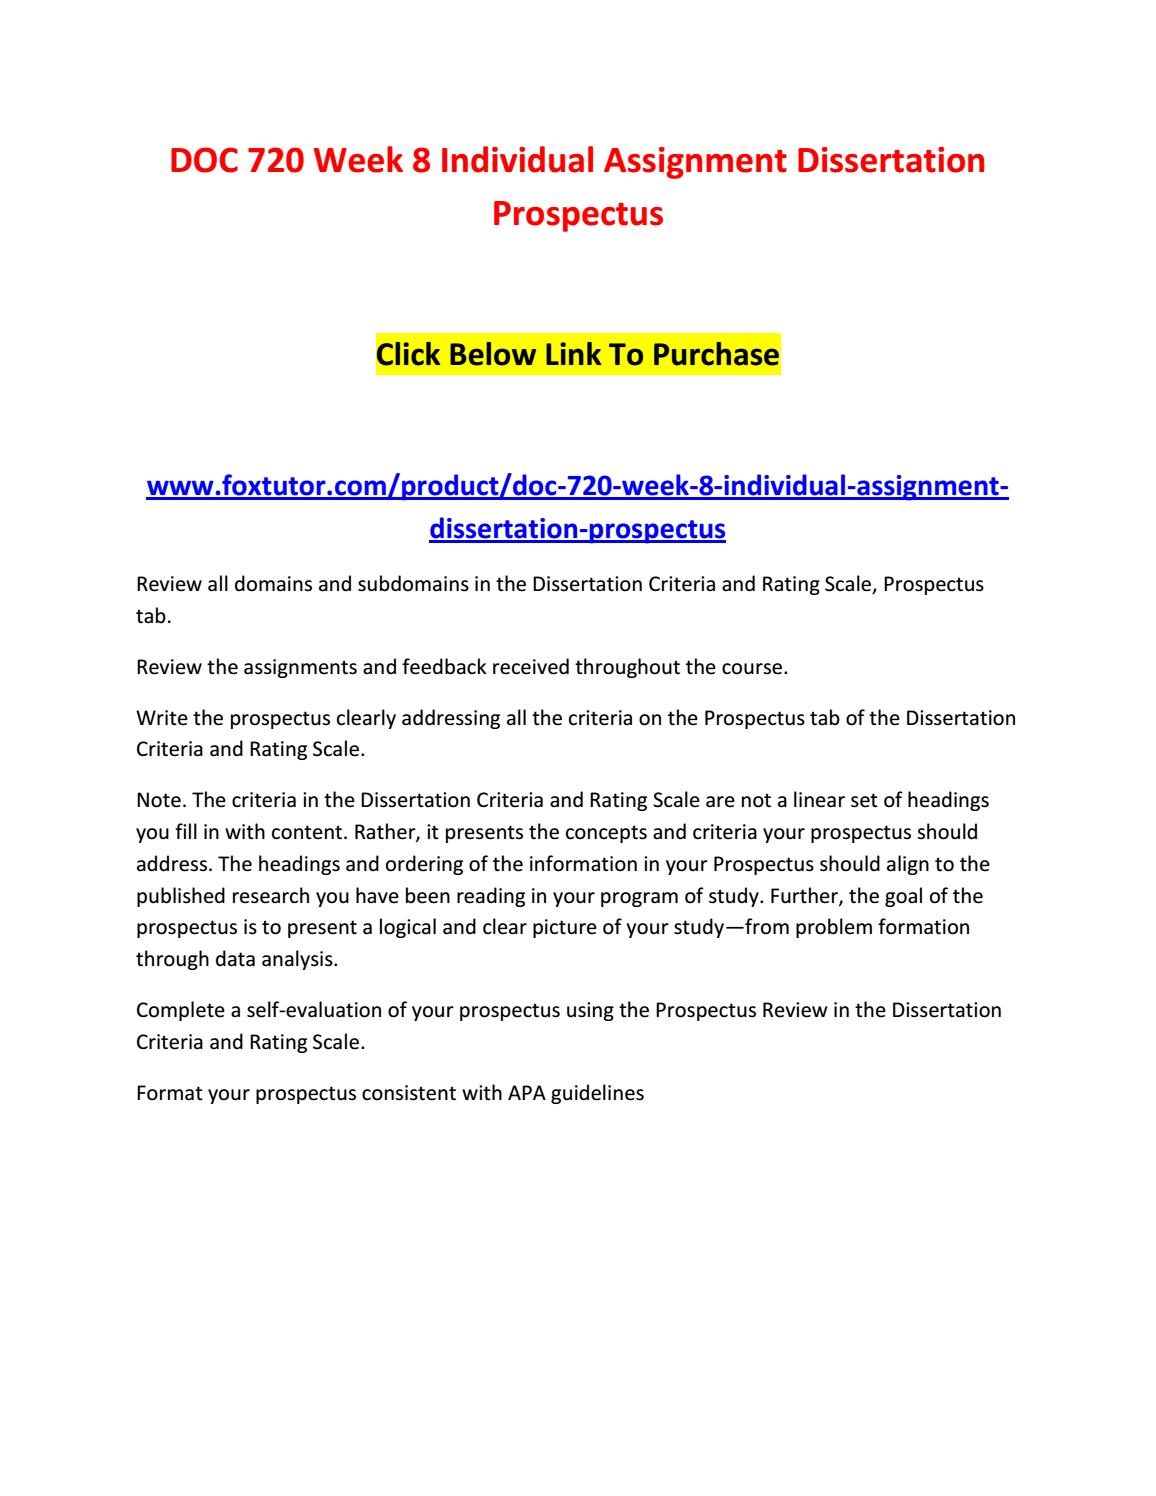 how to write a dissertation prospectus